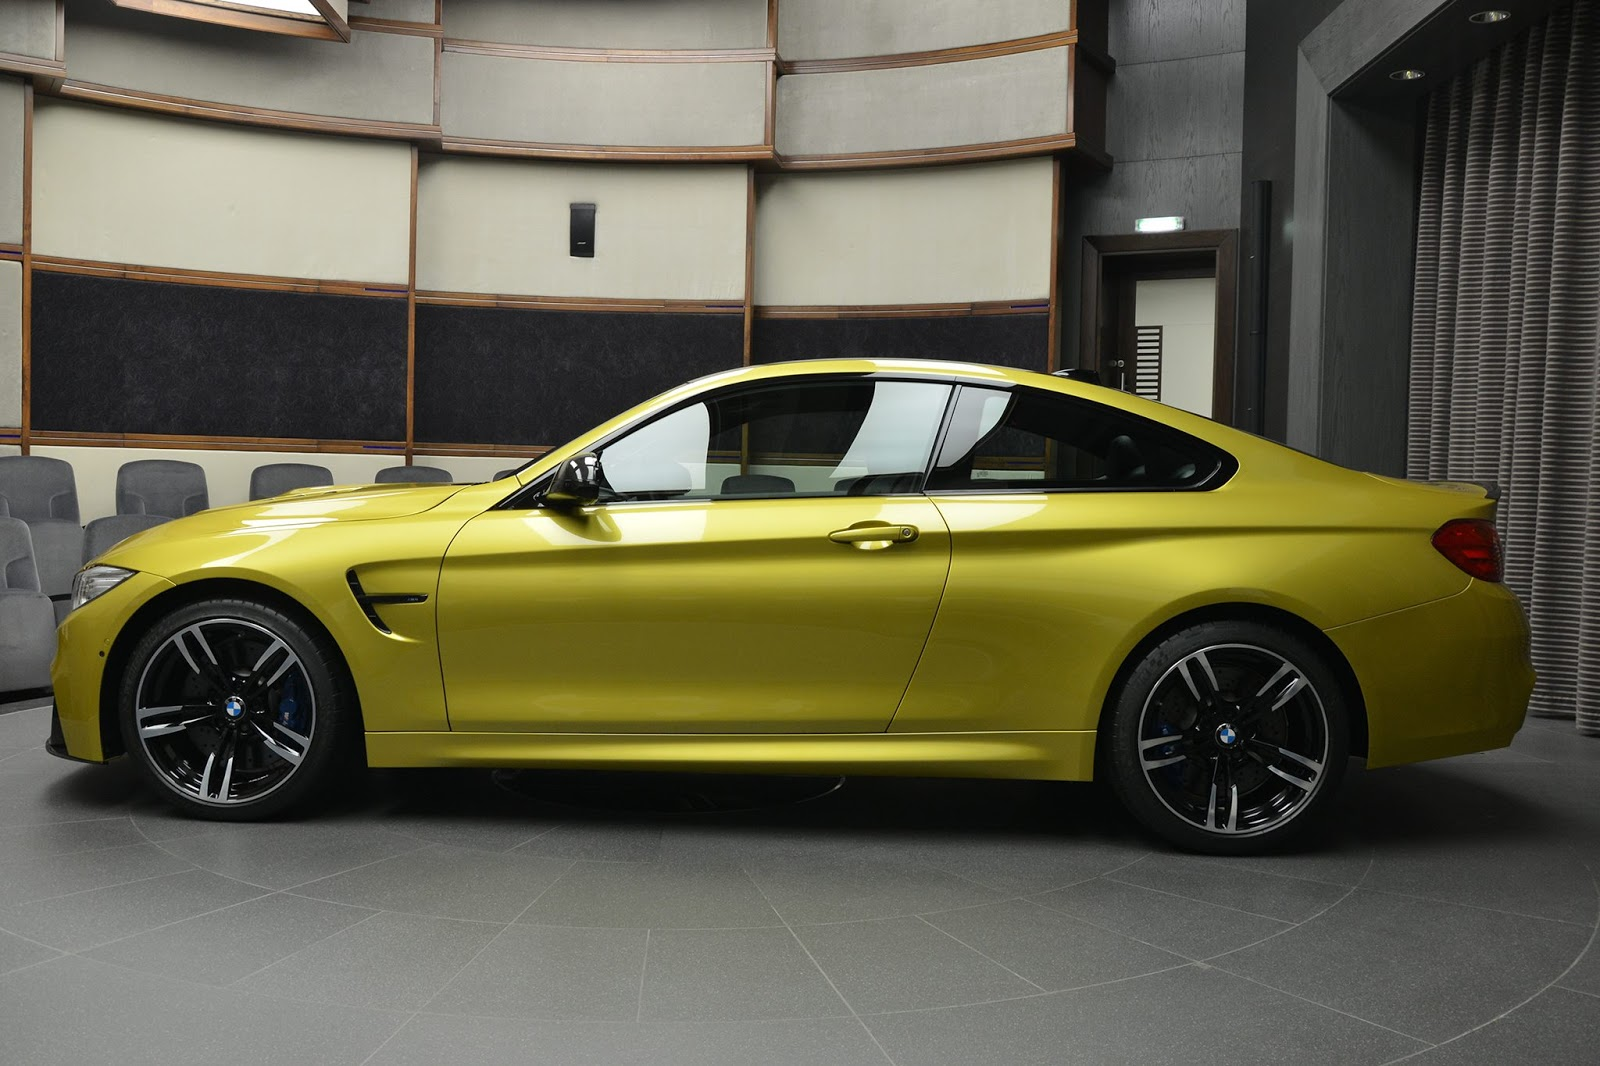 BMW_M4_Austin_Yellow_05